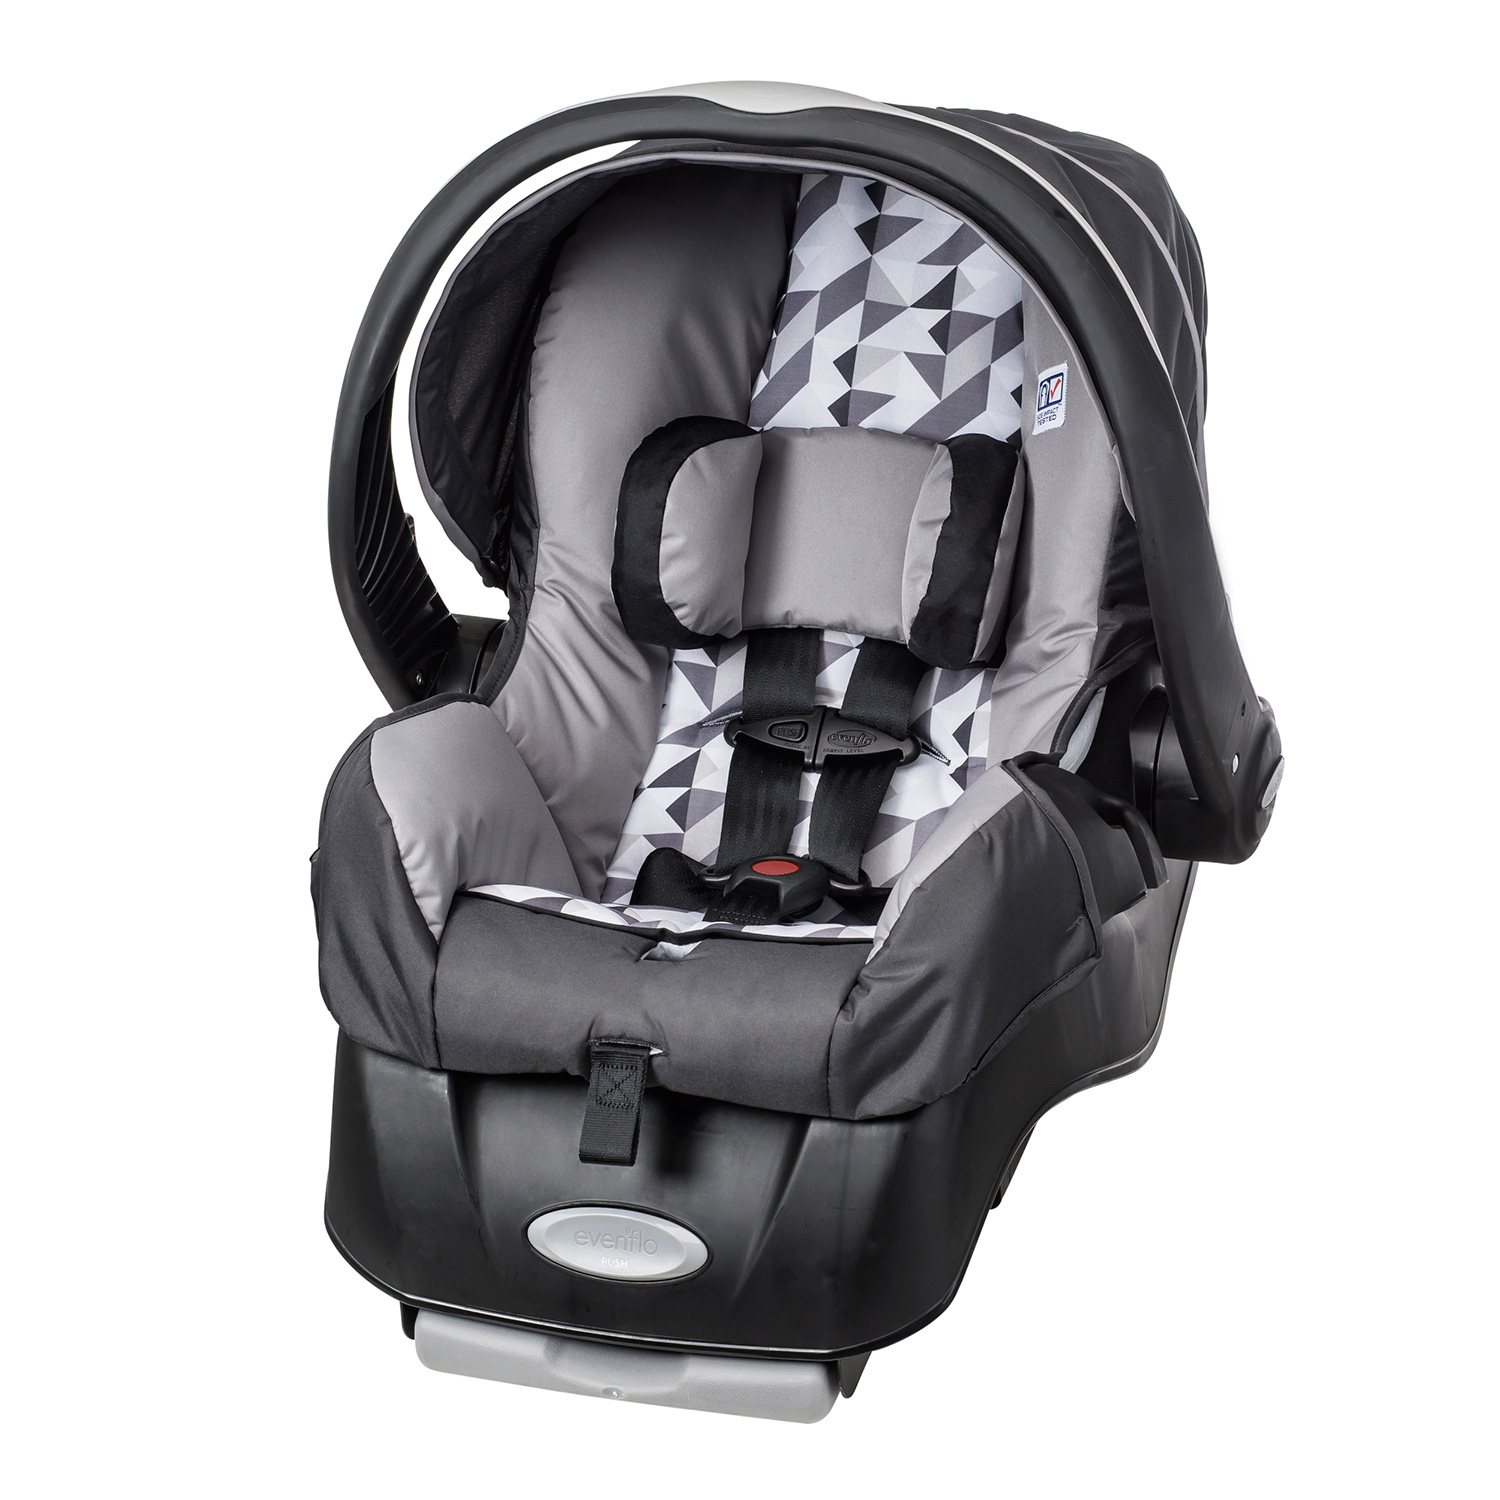 Safety First Infant Car Seats Infant Car Seat Raleigh